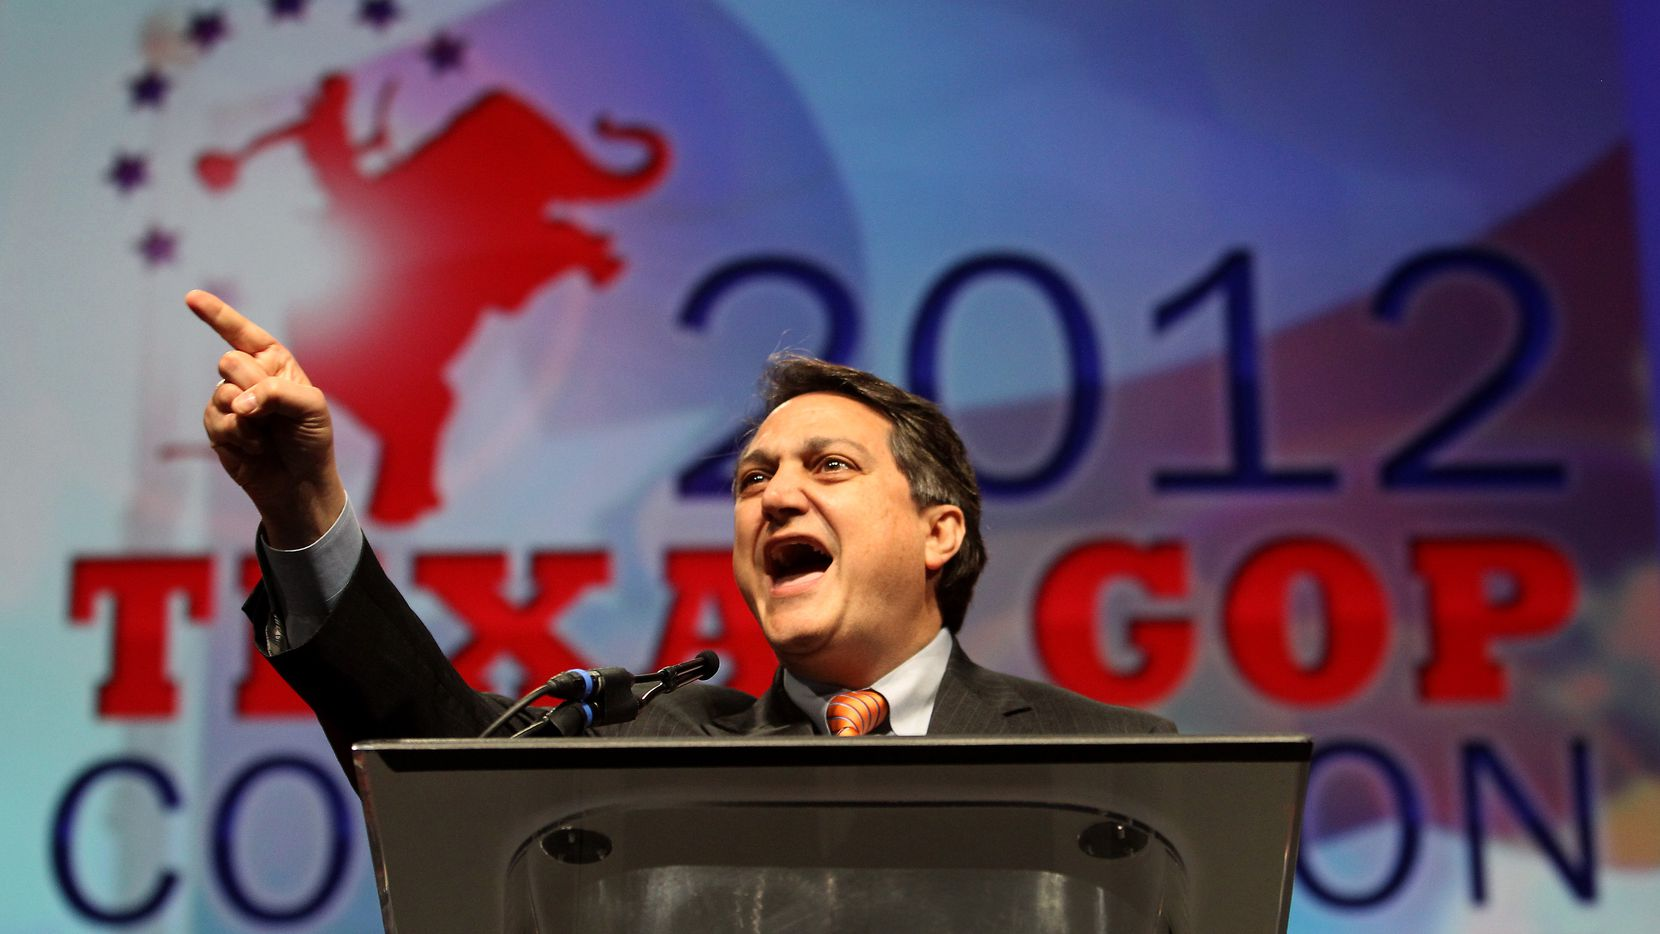 Steve Munisteri, Chairman of the Republican Party of Texas addresses the delegates of the Texas GOP convention in Fort Worth, Texas Thursday, June 7, 2012. (Brad Loper/The Dallas Morning News) 12042012xNEWS